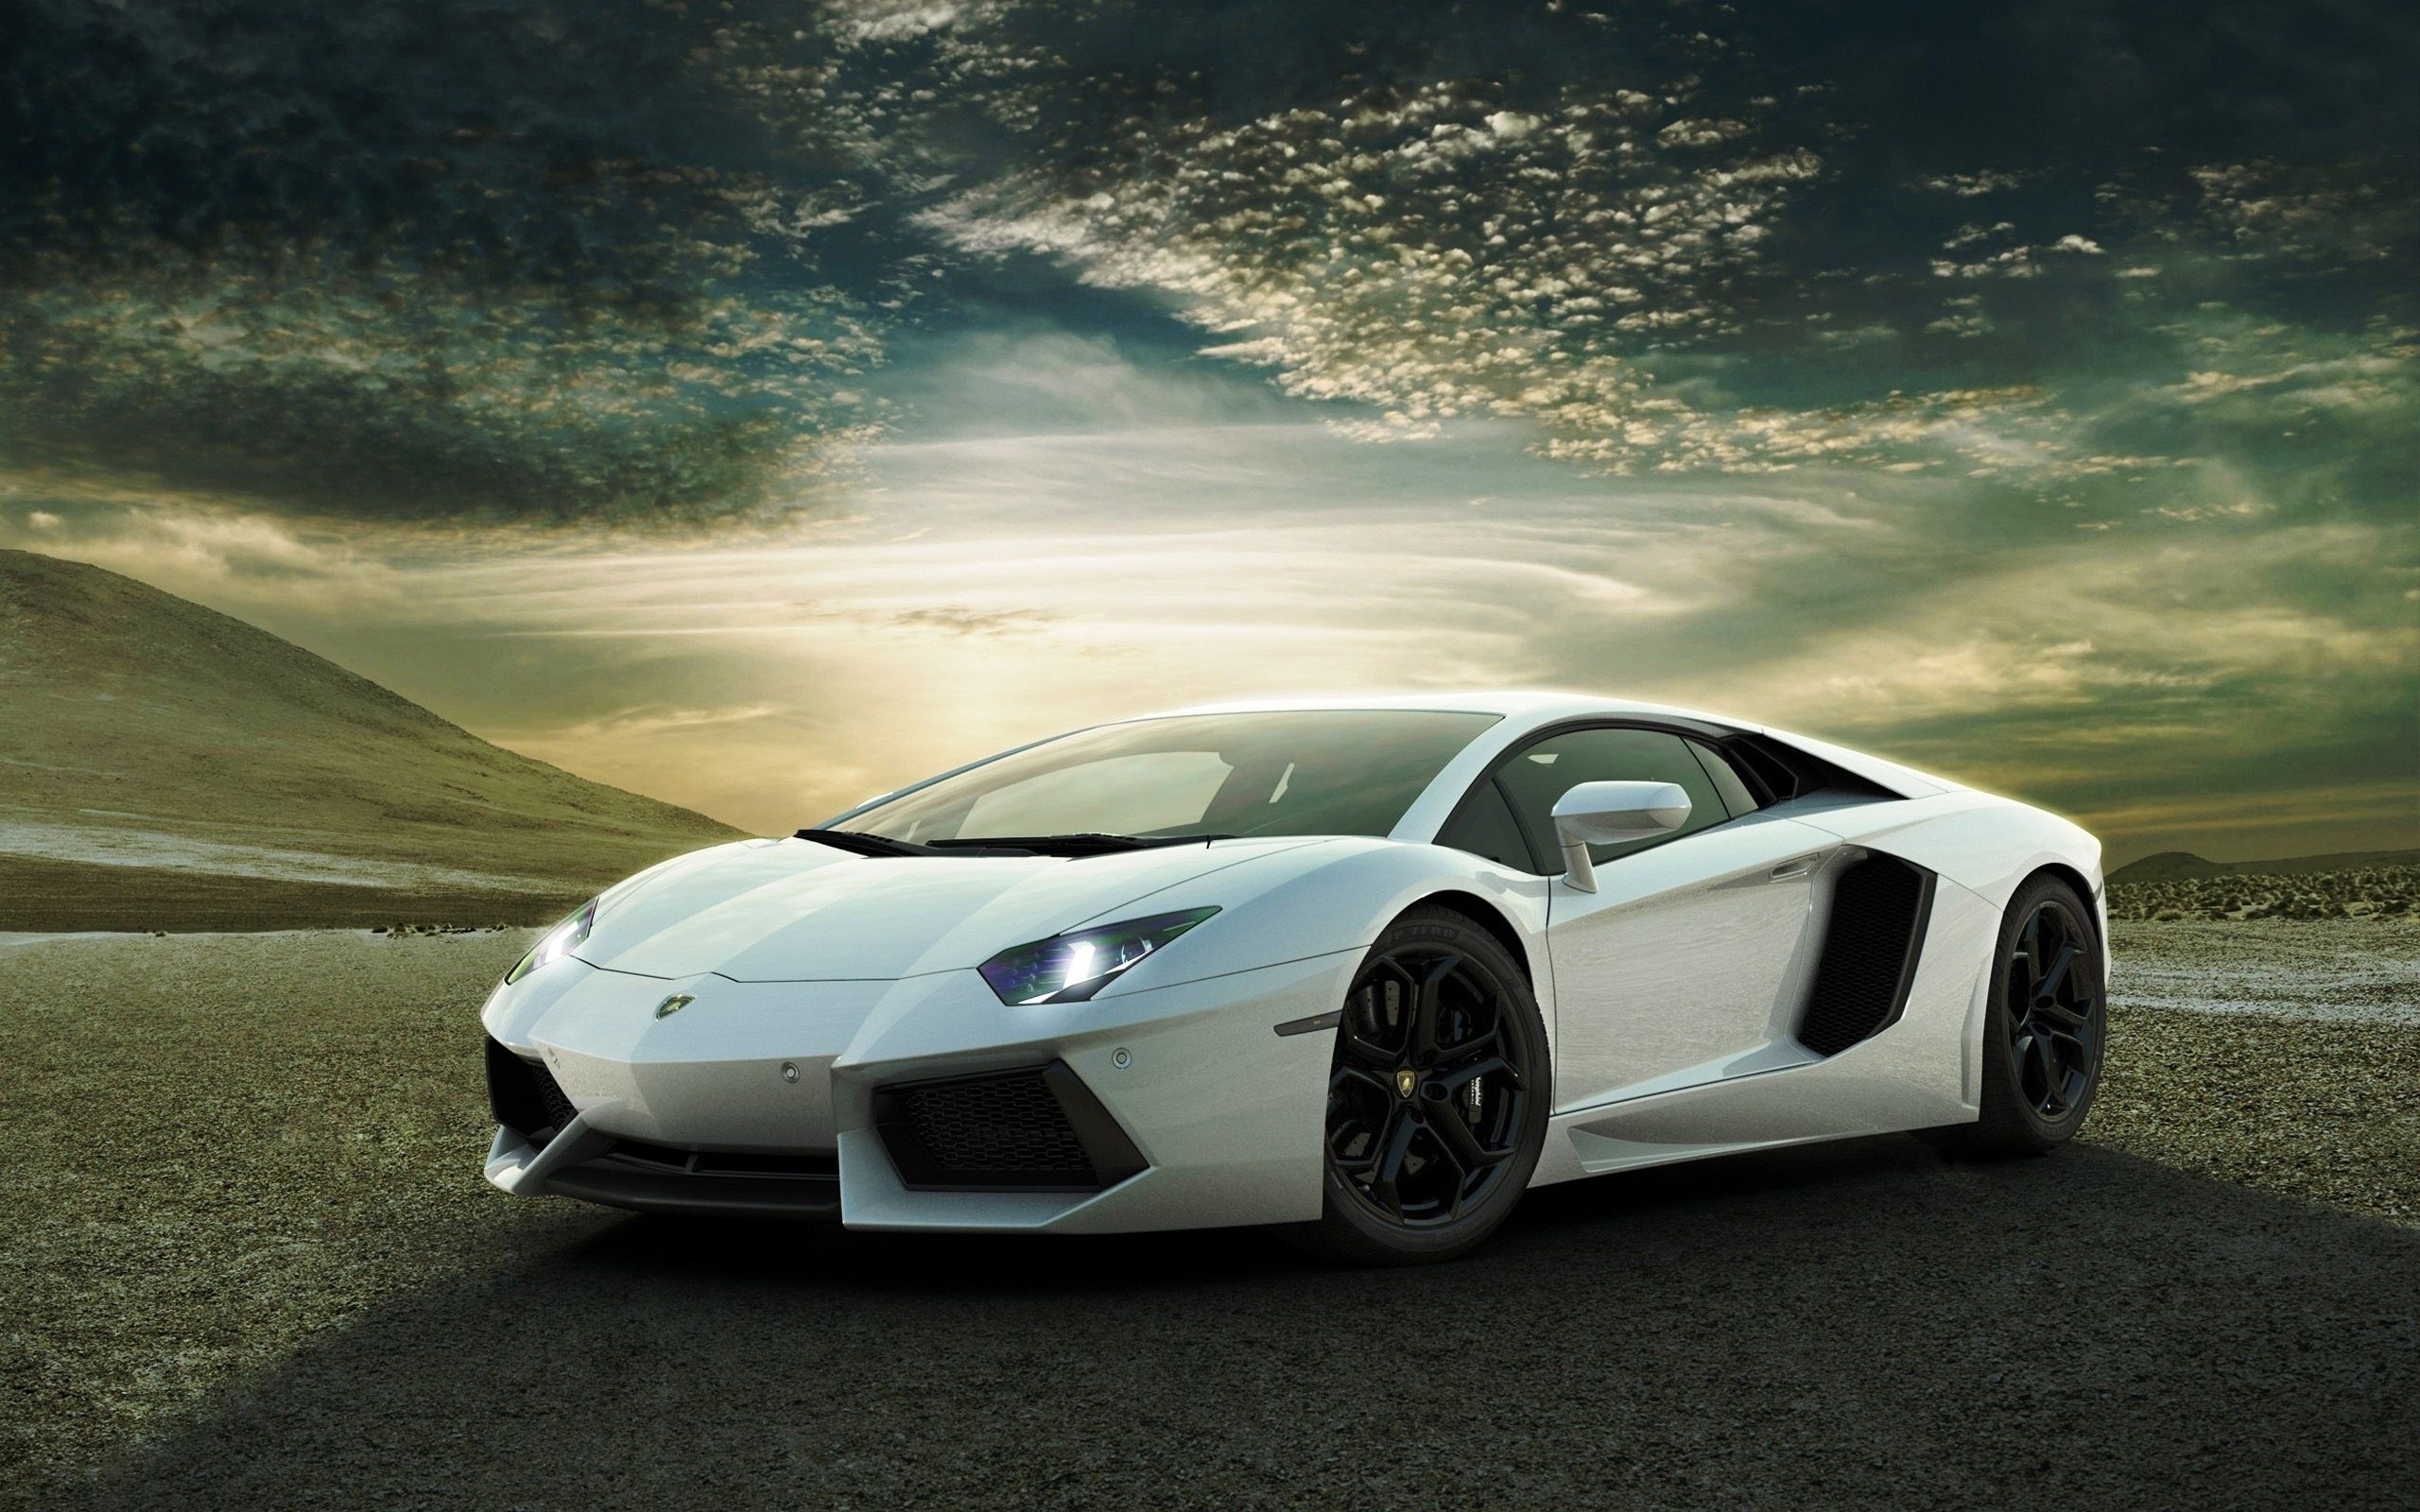 Lamborghini Cars Wallpapers Lamborghini Cars Wallpapers Throughout